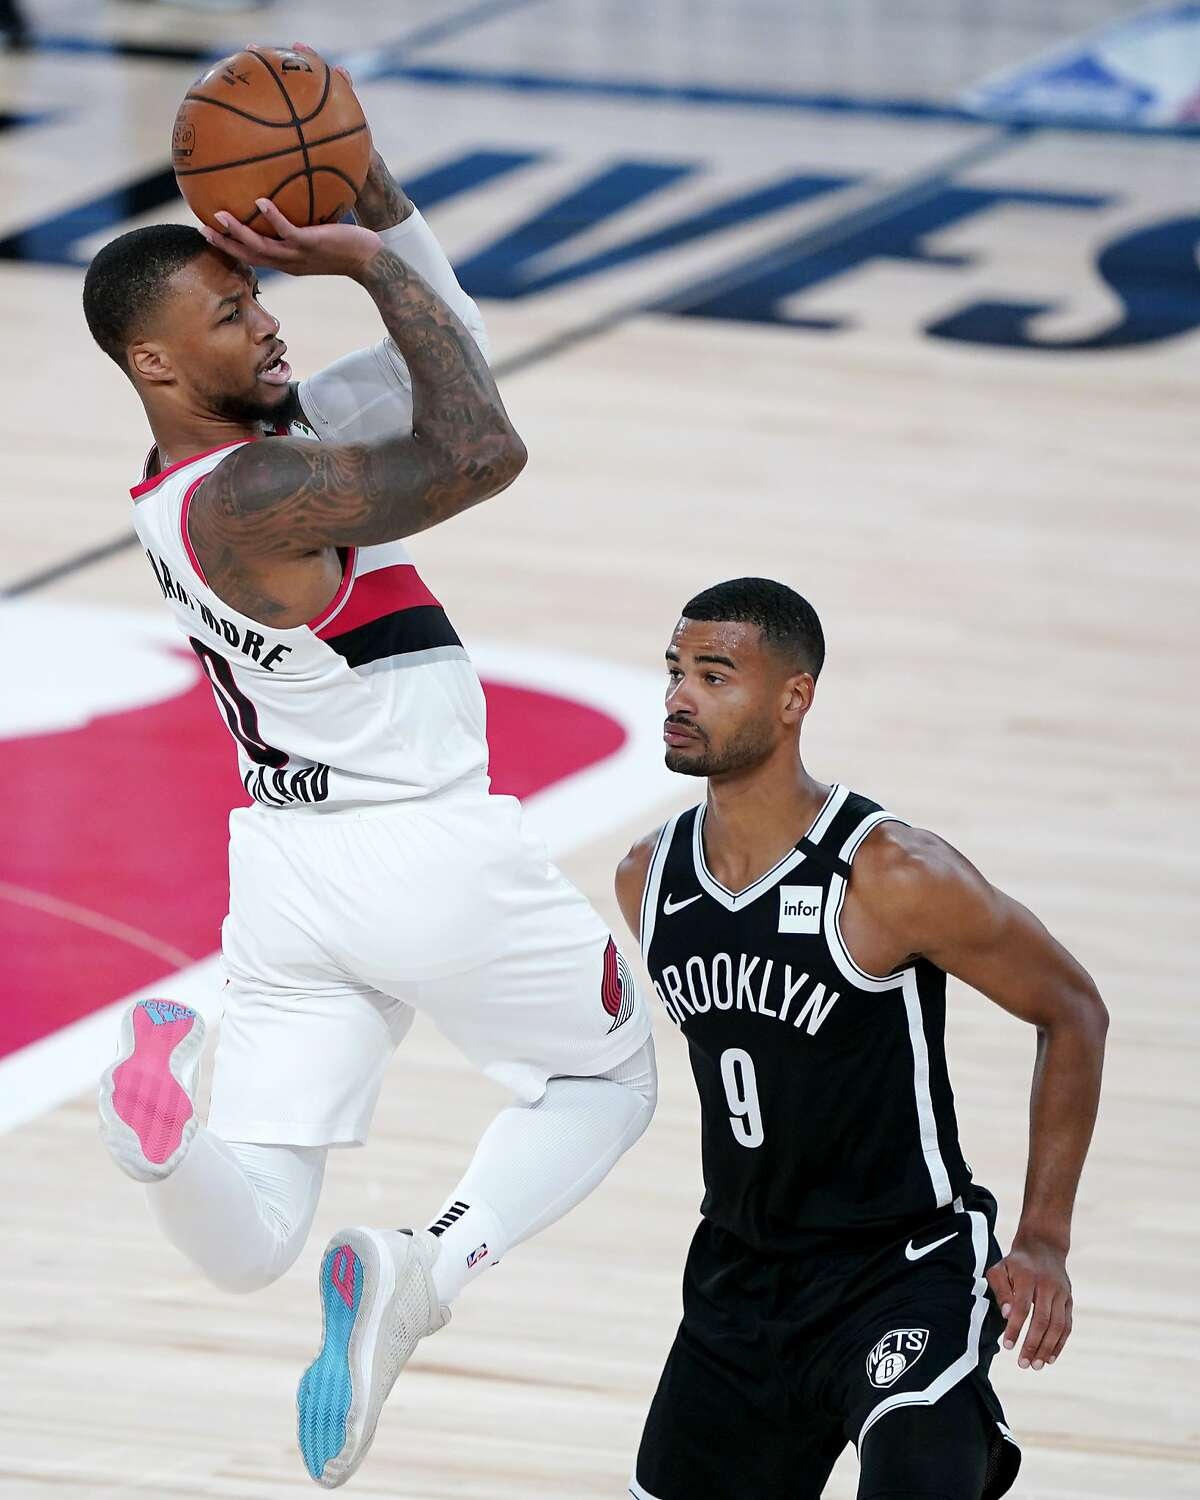 Portland Trail Blazers' Damian Lillard, left, goes up with the ball against Brooklyn Nets' Timothe Luwawu-Cabarrot during the first half of an NBA basketball game Thursday, Aug. 13, 2020 in Lake Buena Vista, Fla. (AP Photo/Ashley Landis, Pool)